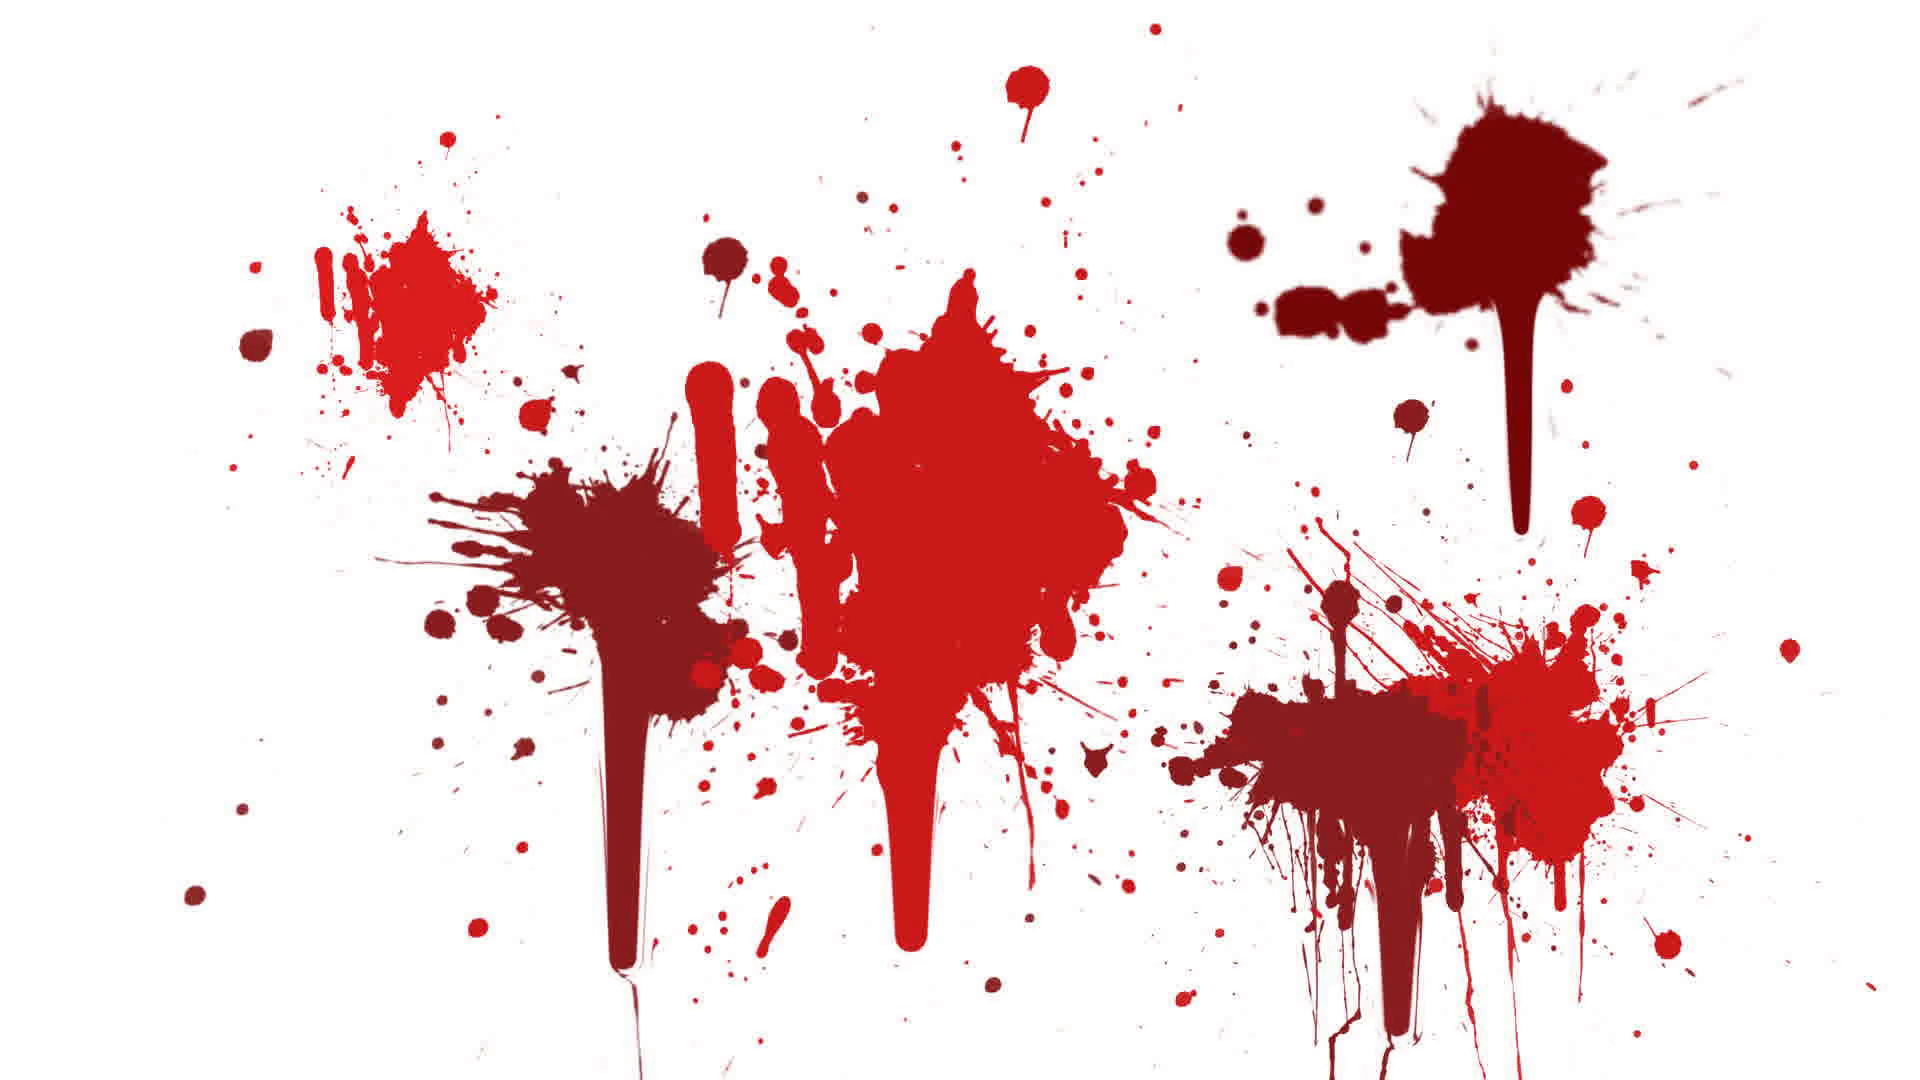 Blood Splatter High Quality Wallpapers